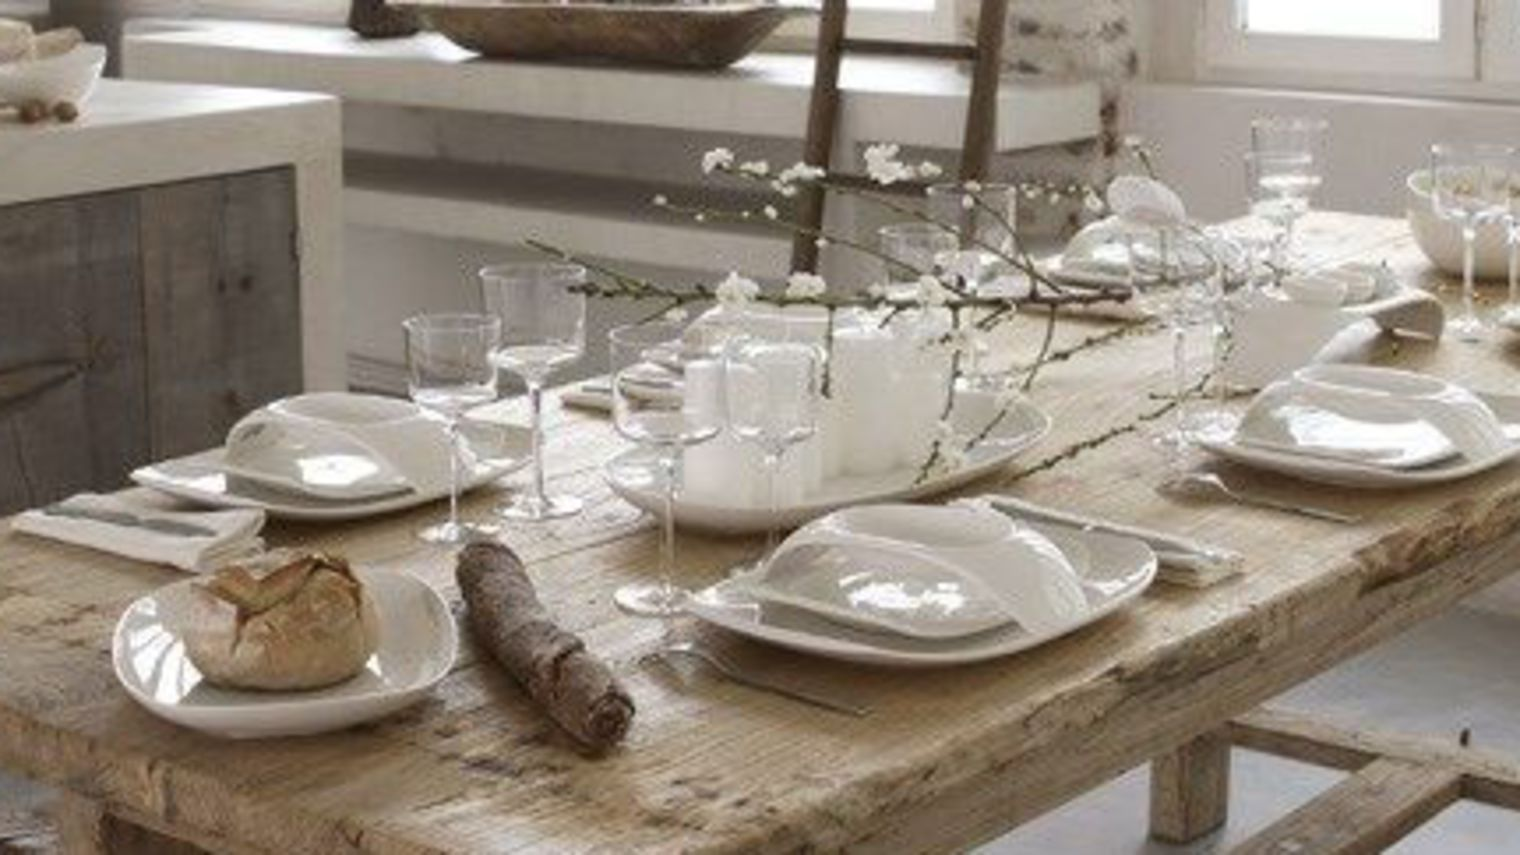 Comment faire une belle table - Comment faire une decoration de table ...